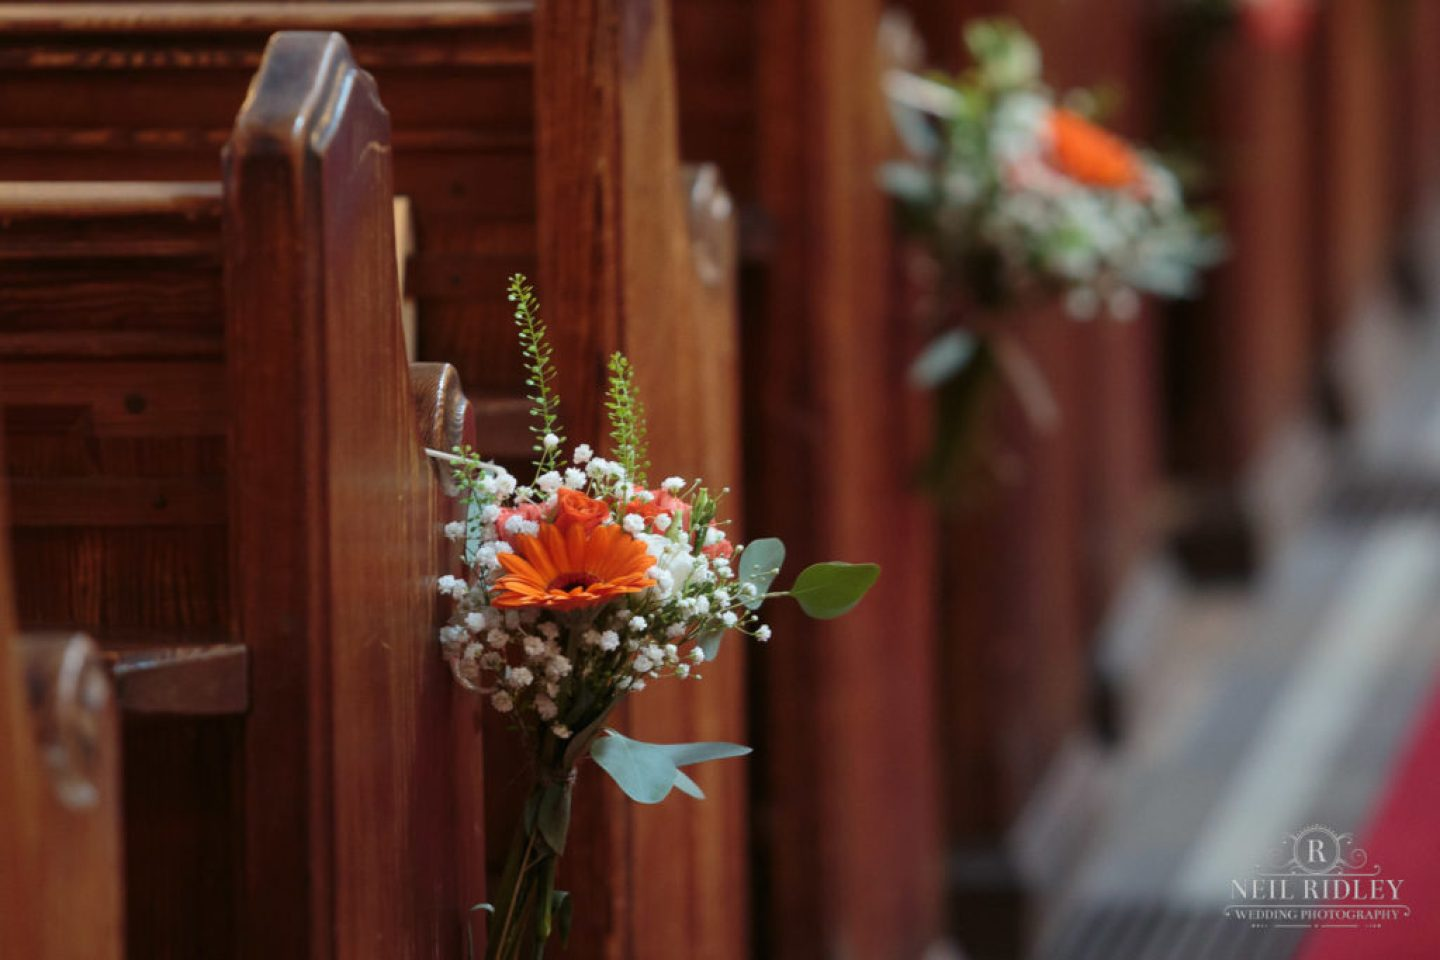 Flowers on church pew at St Thomas Church in St Annes-on-Sea